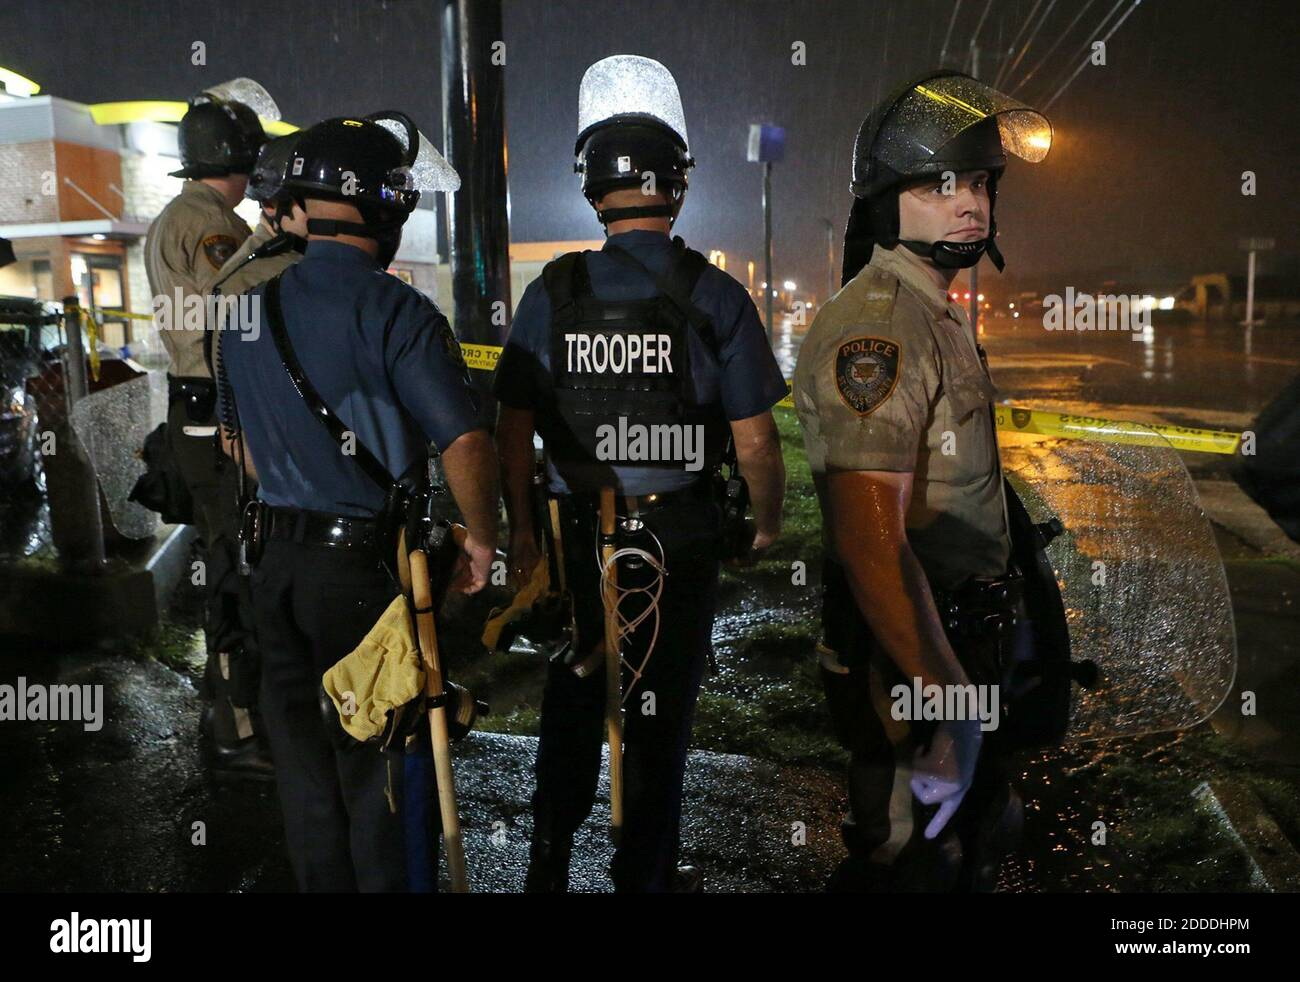 NO FILM, NO VIDEO, NO TV, NO DOCUMENTARY - Missouri Highway Patrol officers and St. Louis County police stand at the ready in the rain next to the McDonald's on West Florissant Avenue in Ferguson, MO, USA, on Saturday, Aug. 16, 2014, several minutes after the curfew started at midnight. Most people on the south end of West Florissant in the containment area complied with the curfew. Photo by J.B. Forbes/St. Louis Post-Dispatch/MCT/ABACAPRESS.COM Stock Photo